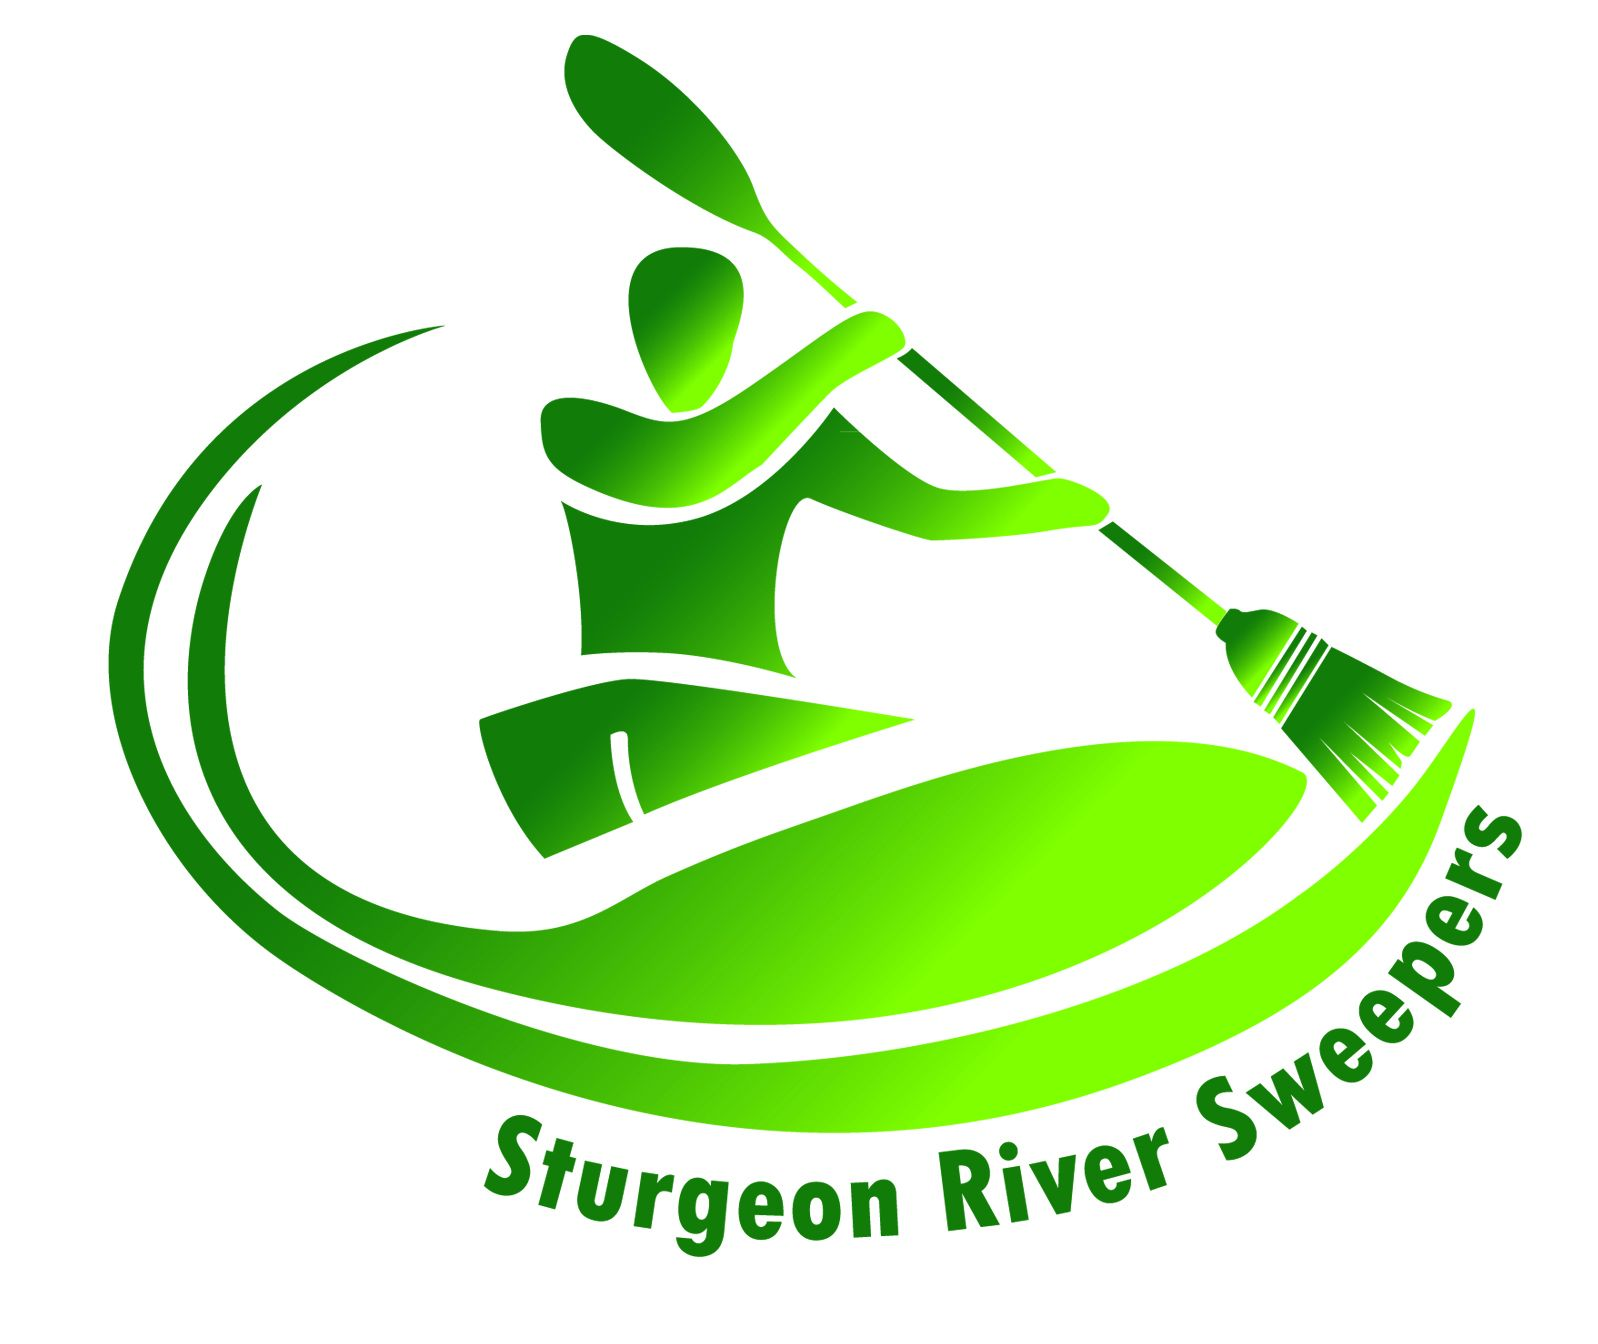 The Sturgeon River Sweepers have only been a 501(c3) for a short time but we have had a strong beginning and we want to thank the BRCS for all its help and support